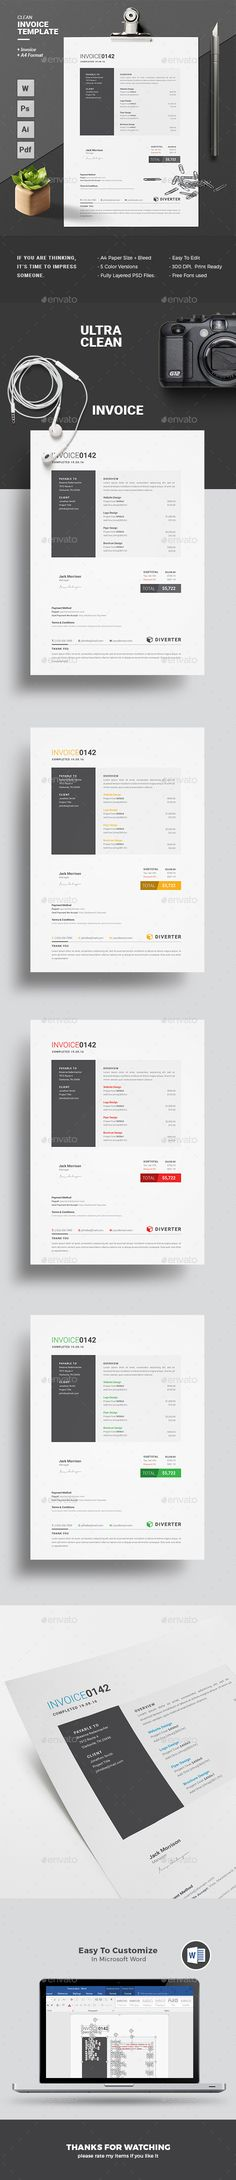 Invoice Best Proposals, Stationery and Quotation format ideas - Download Invoice